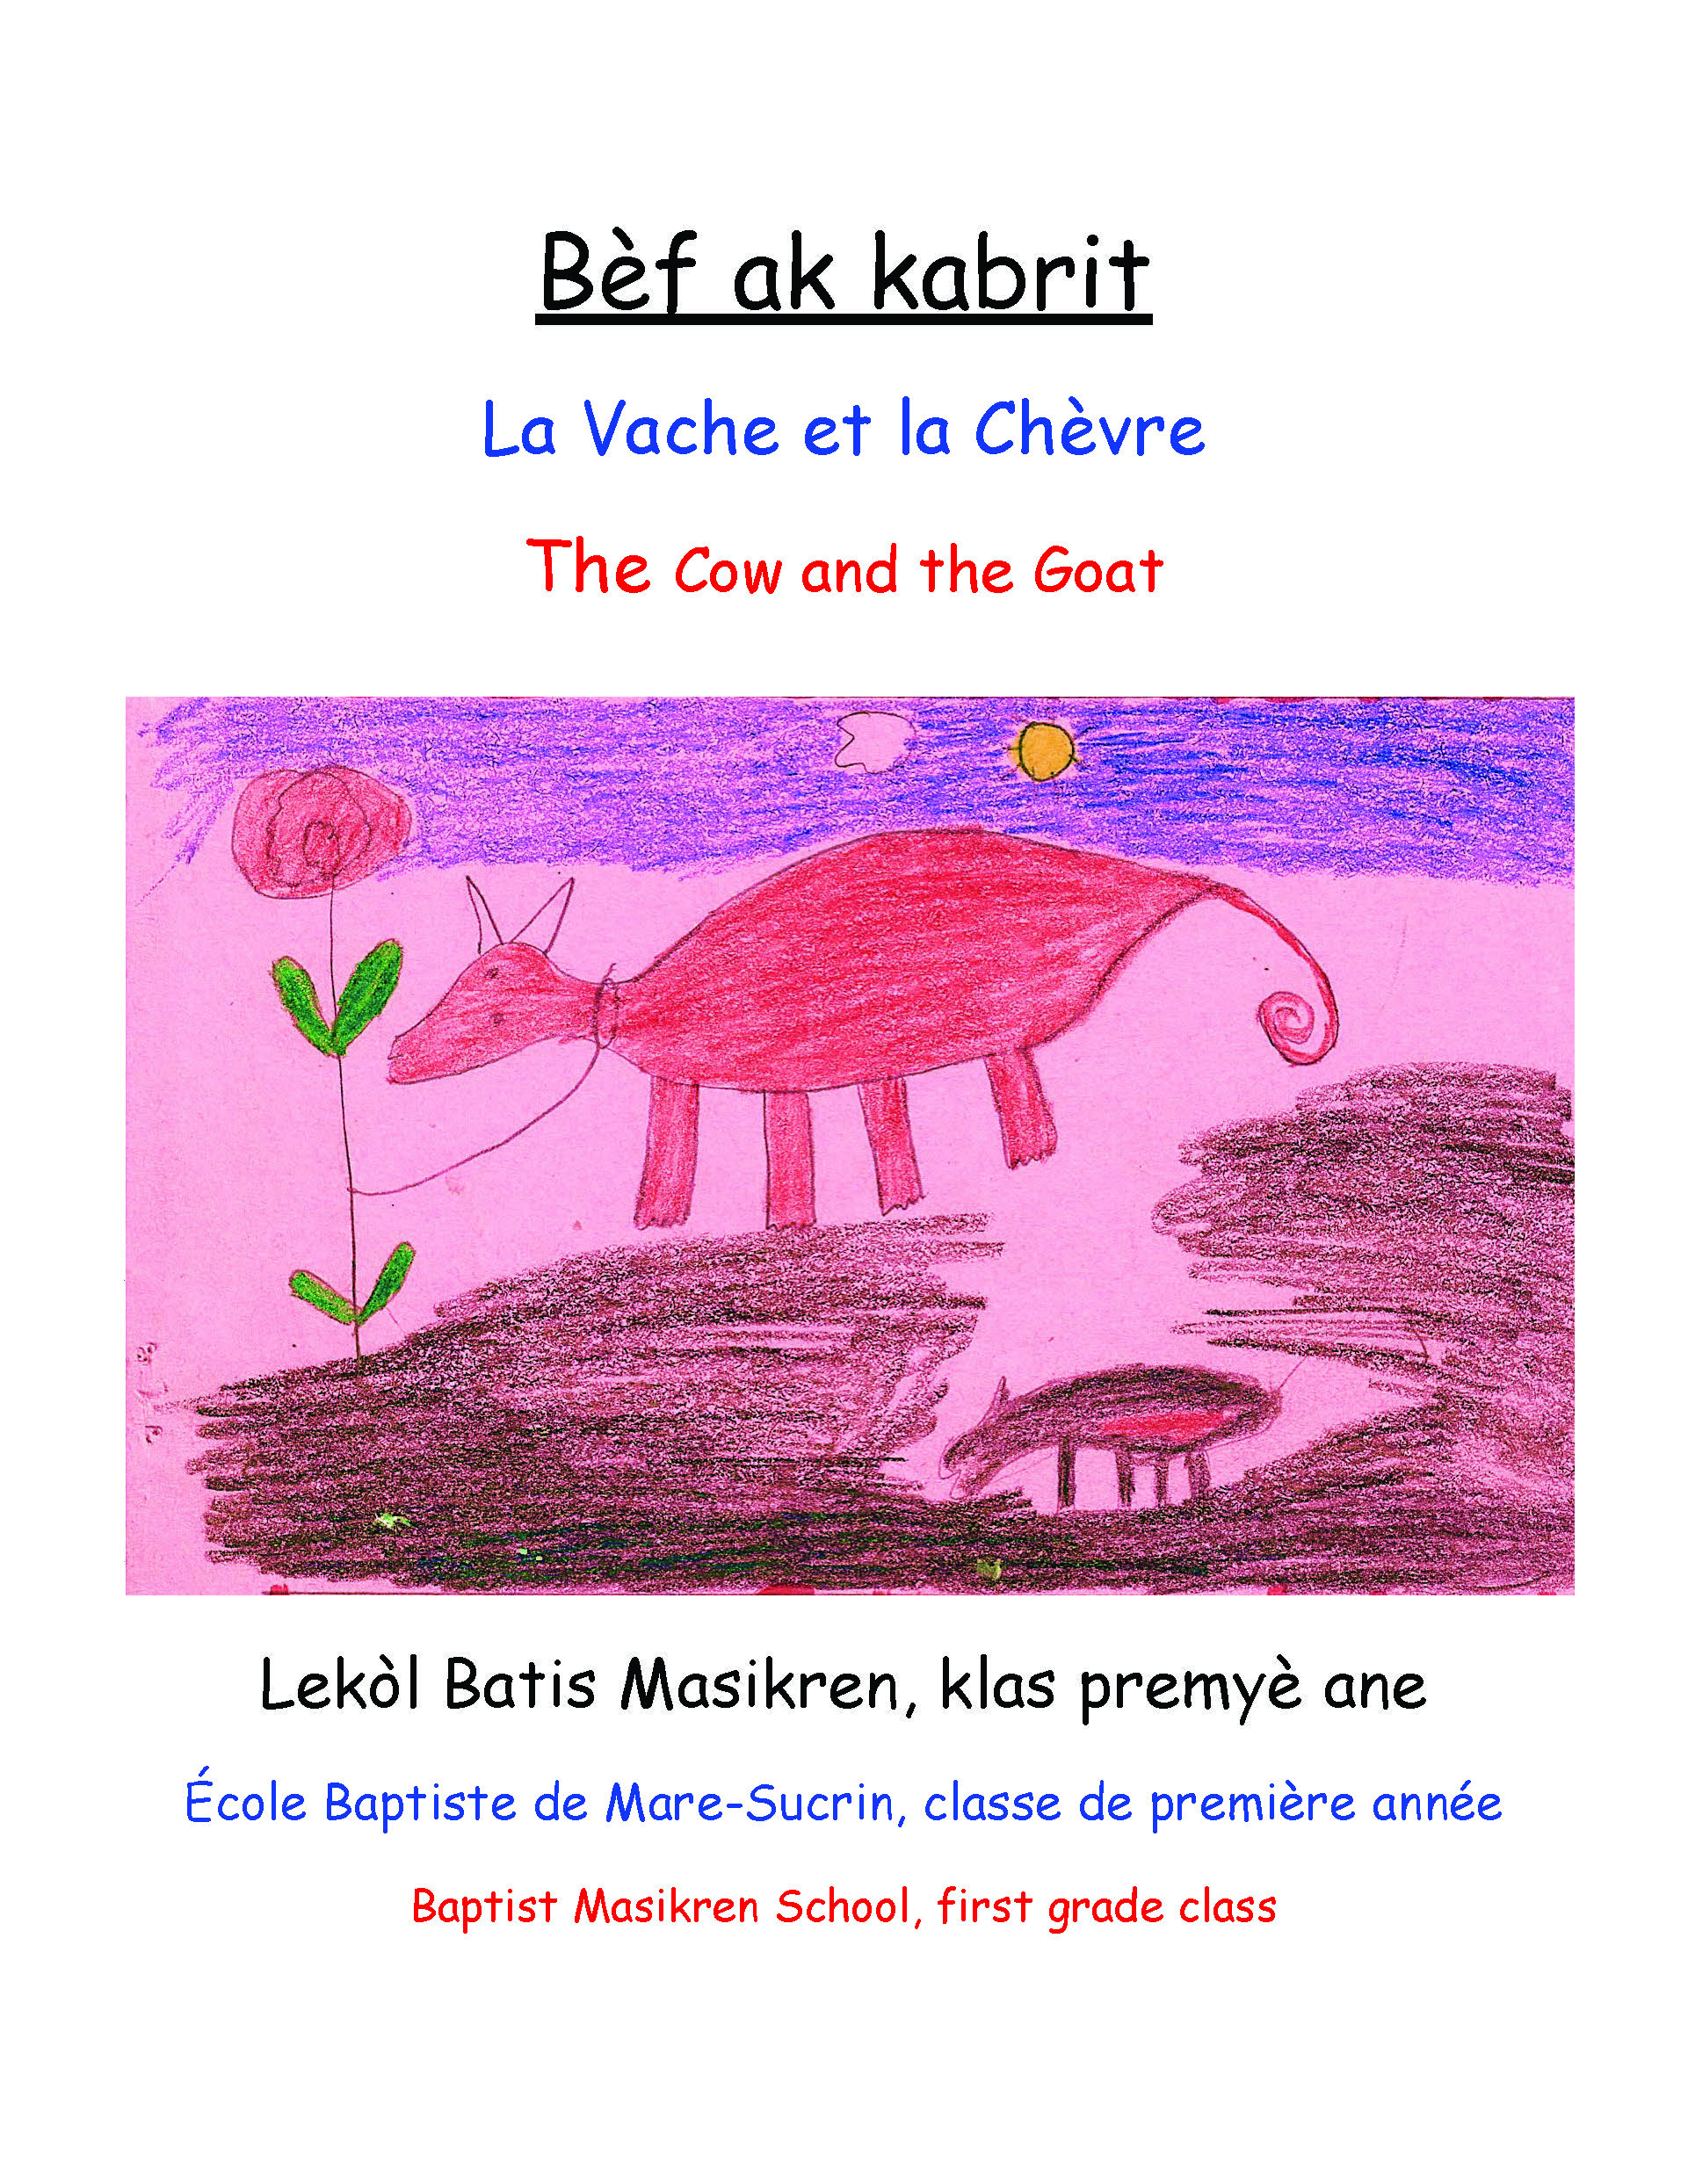 Bèf ak kabrit / The Cow and the Goat